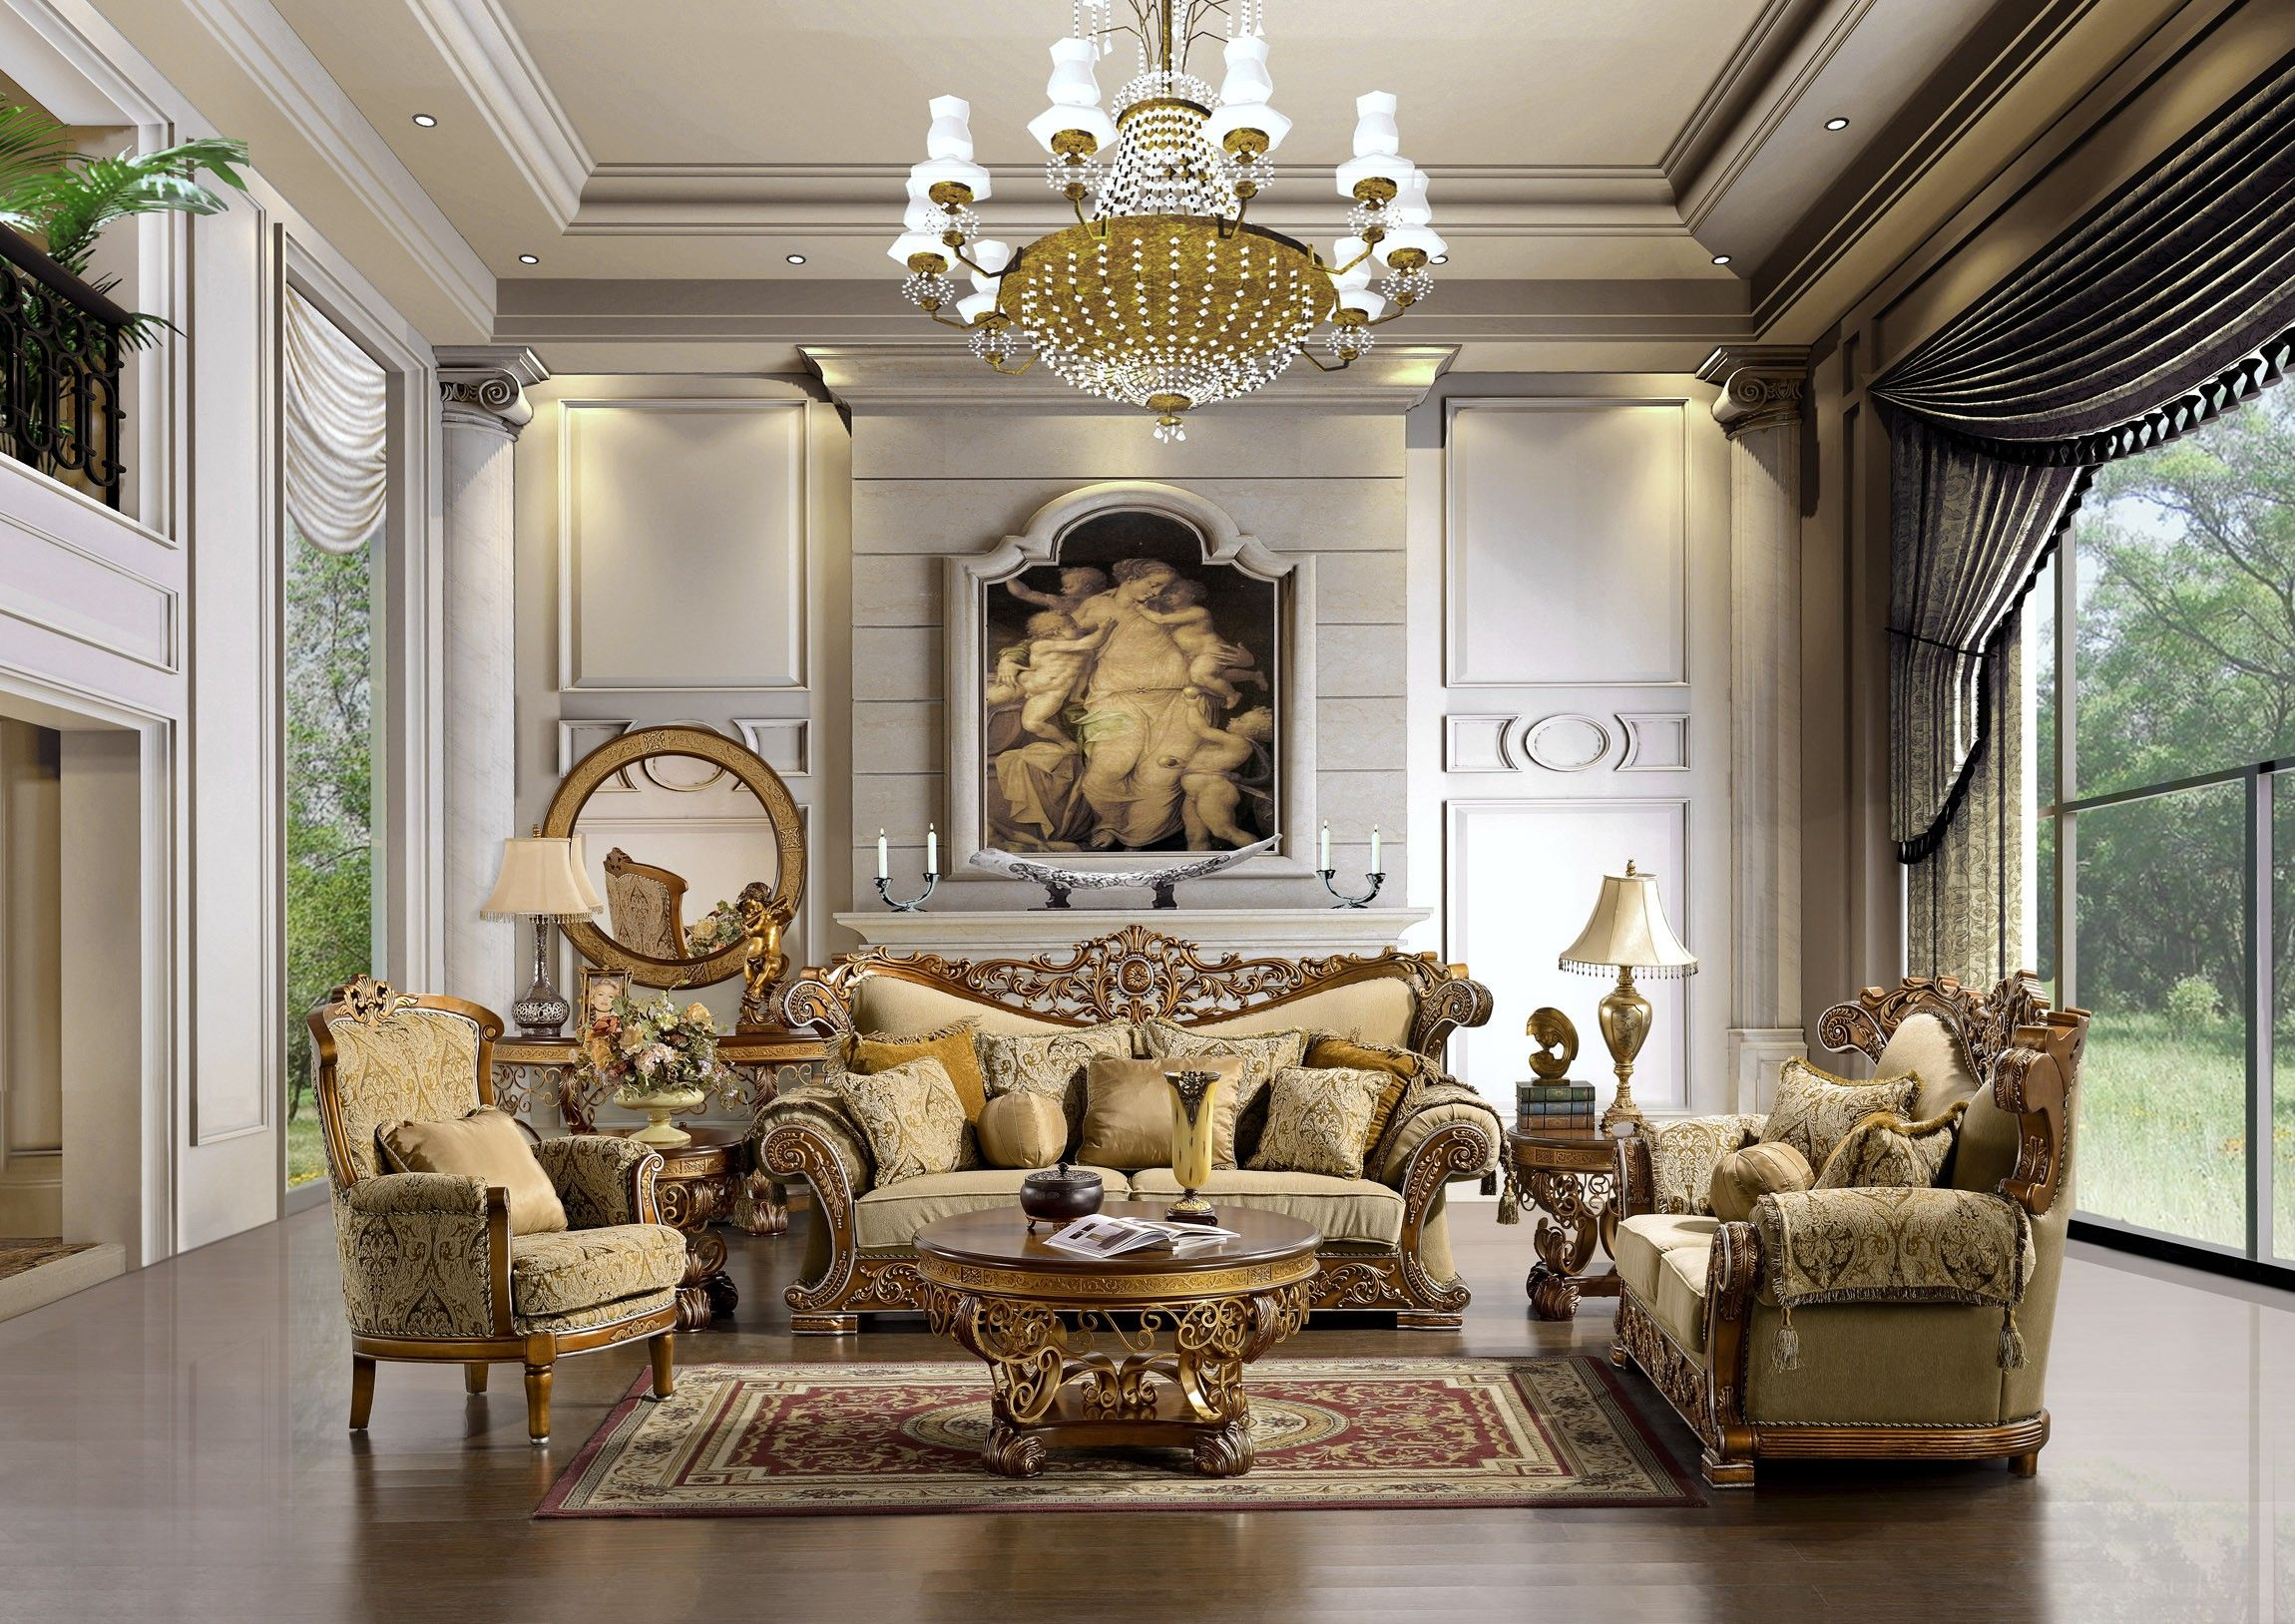 Images Of Traditional Living Rooms  Living Set As Decorate Magnificent Luxury Living Room Interior Design Ideas Inspiration Design